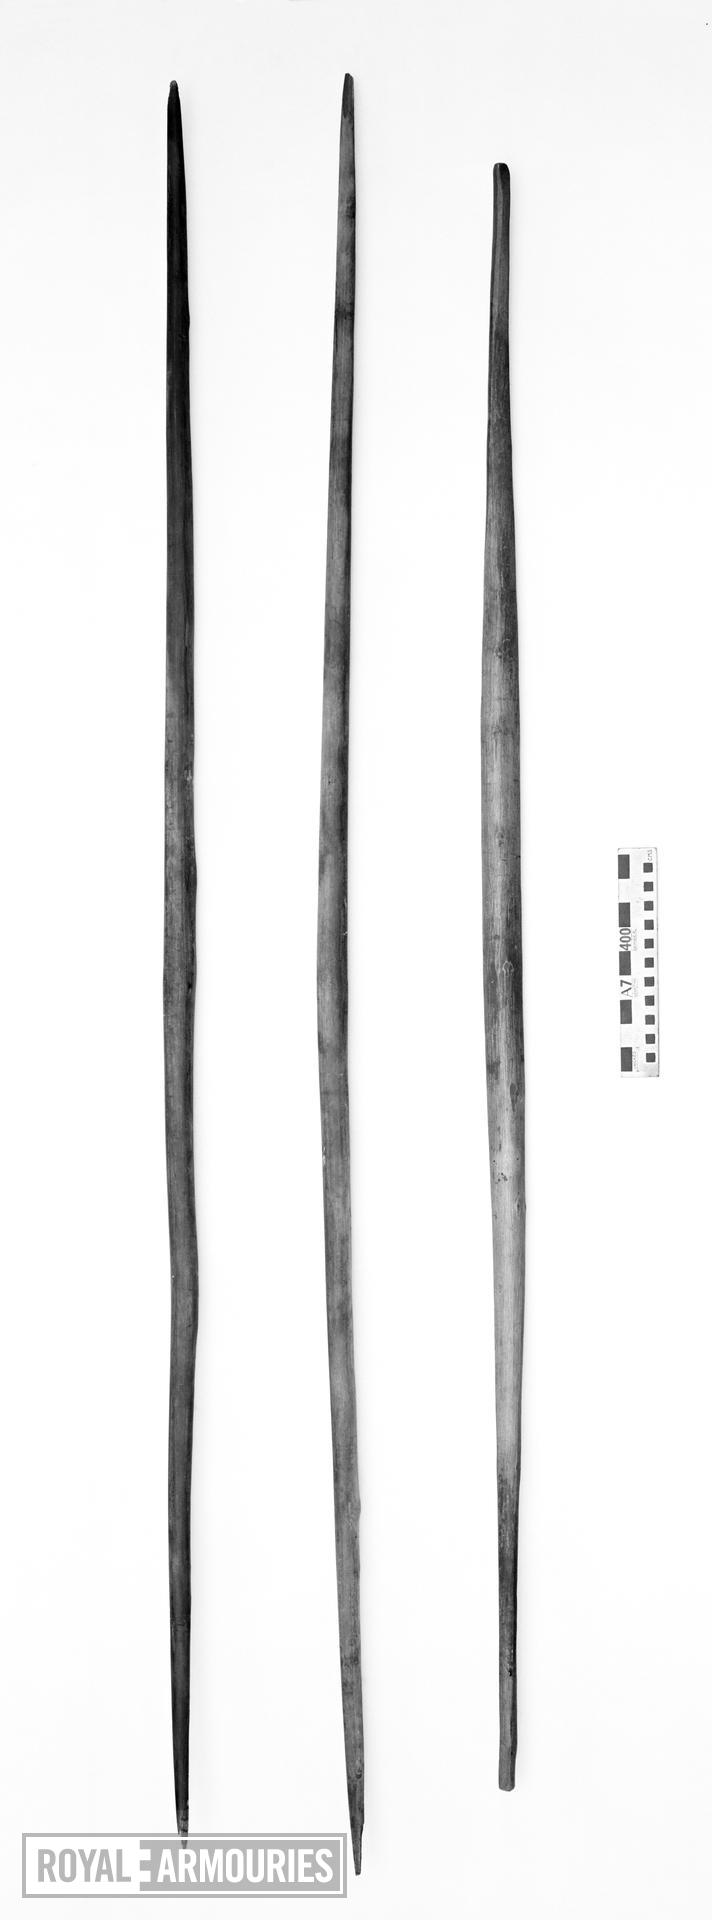 Long bows recovered from the wreck of the Mary Rose sunk in 1545. English, mid 16th century